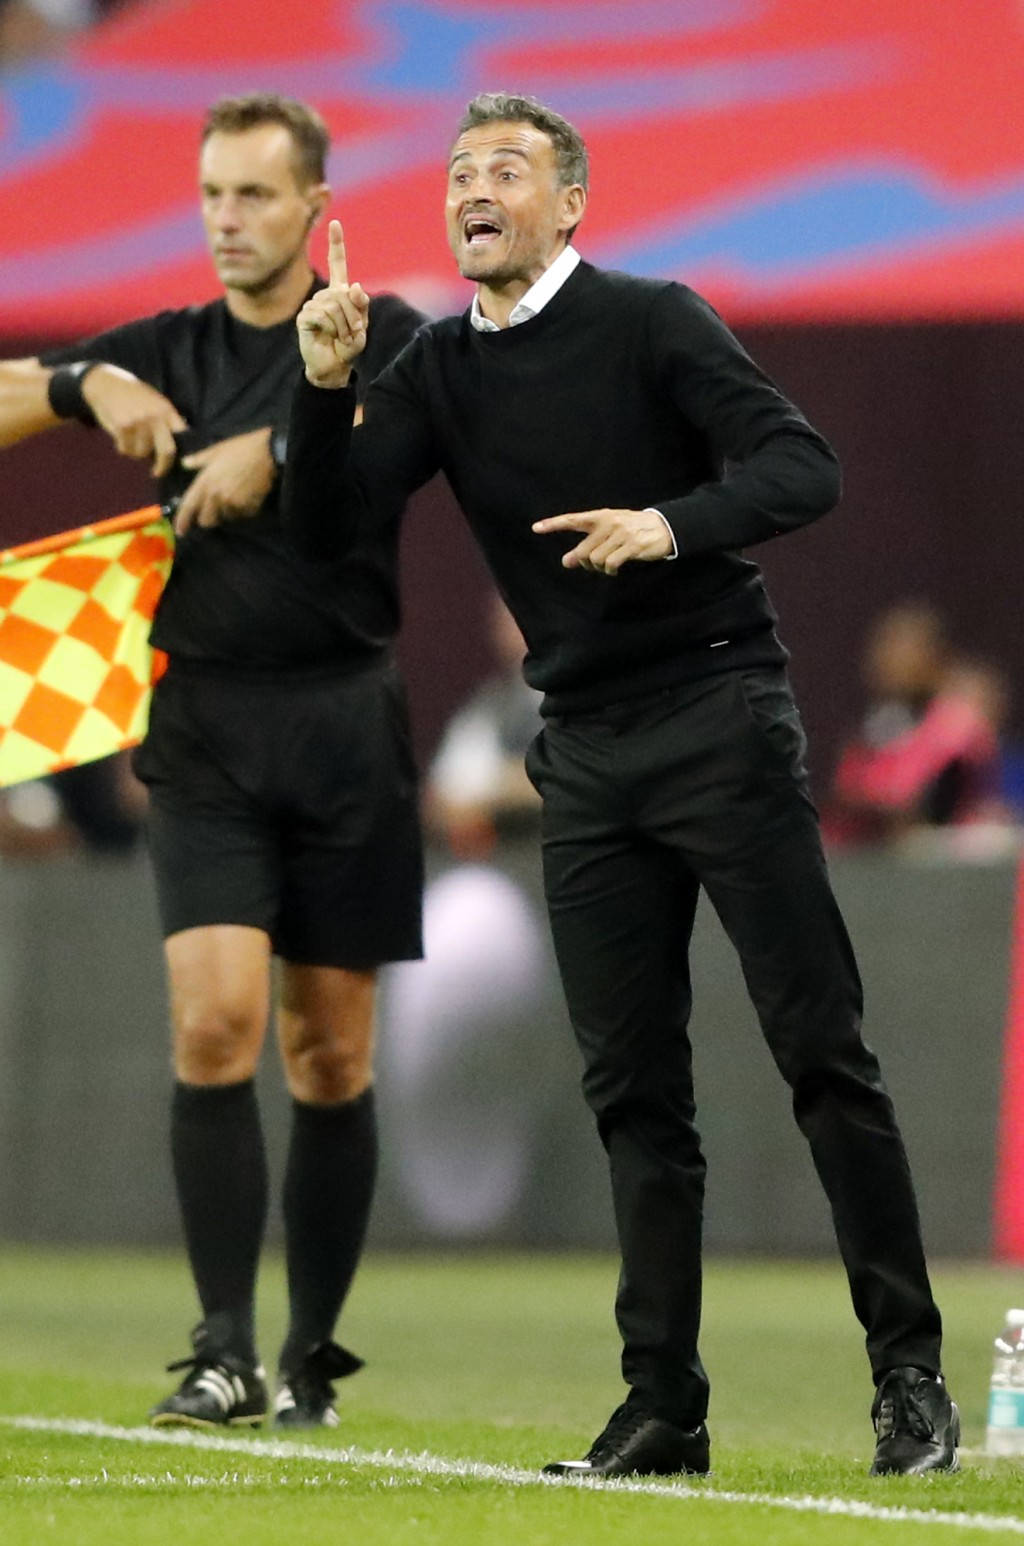 Spain head coach Luis Enrique gestures during the UEFA Nations League soccer match between England and Spain at Wembley stadium in London, Saturday Se